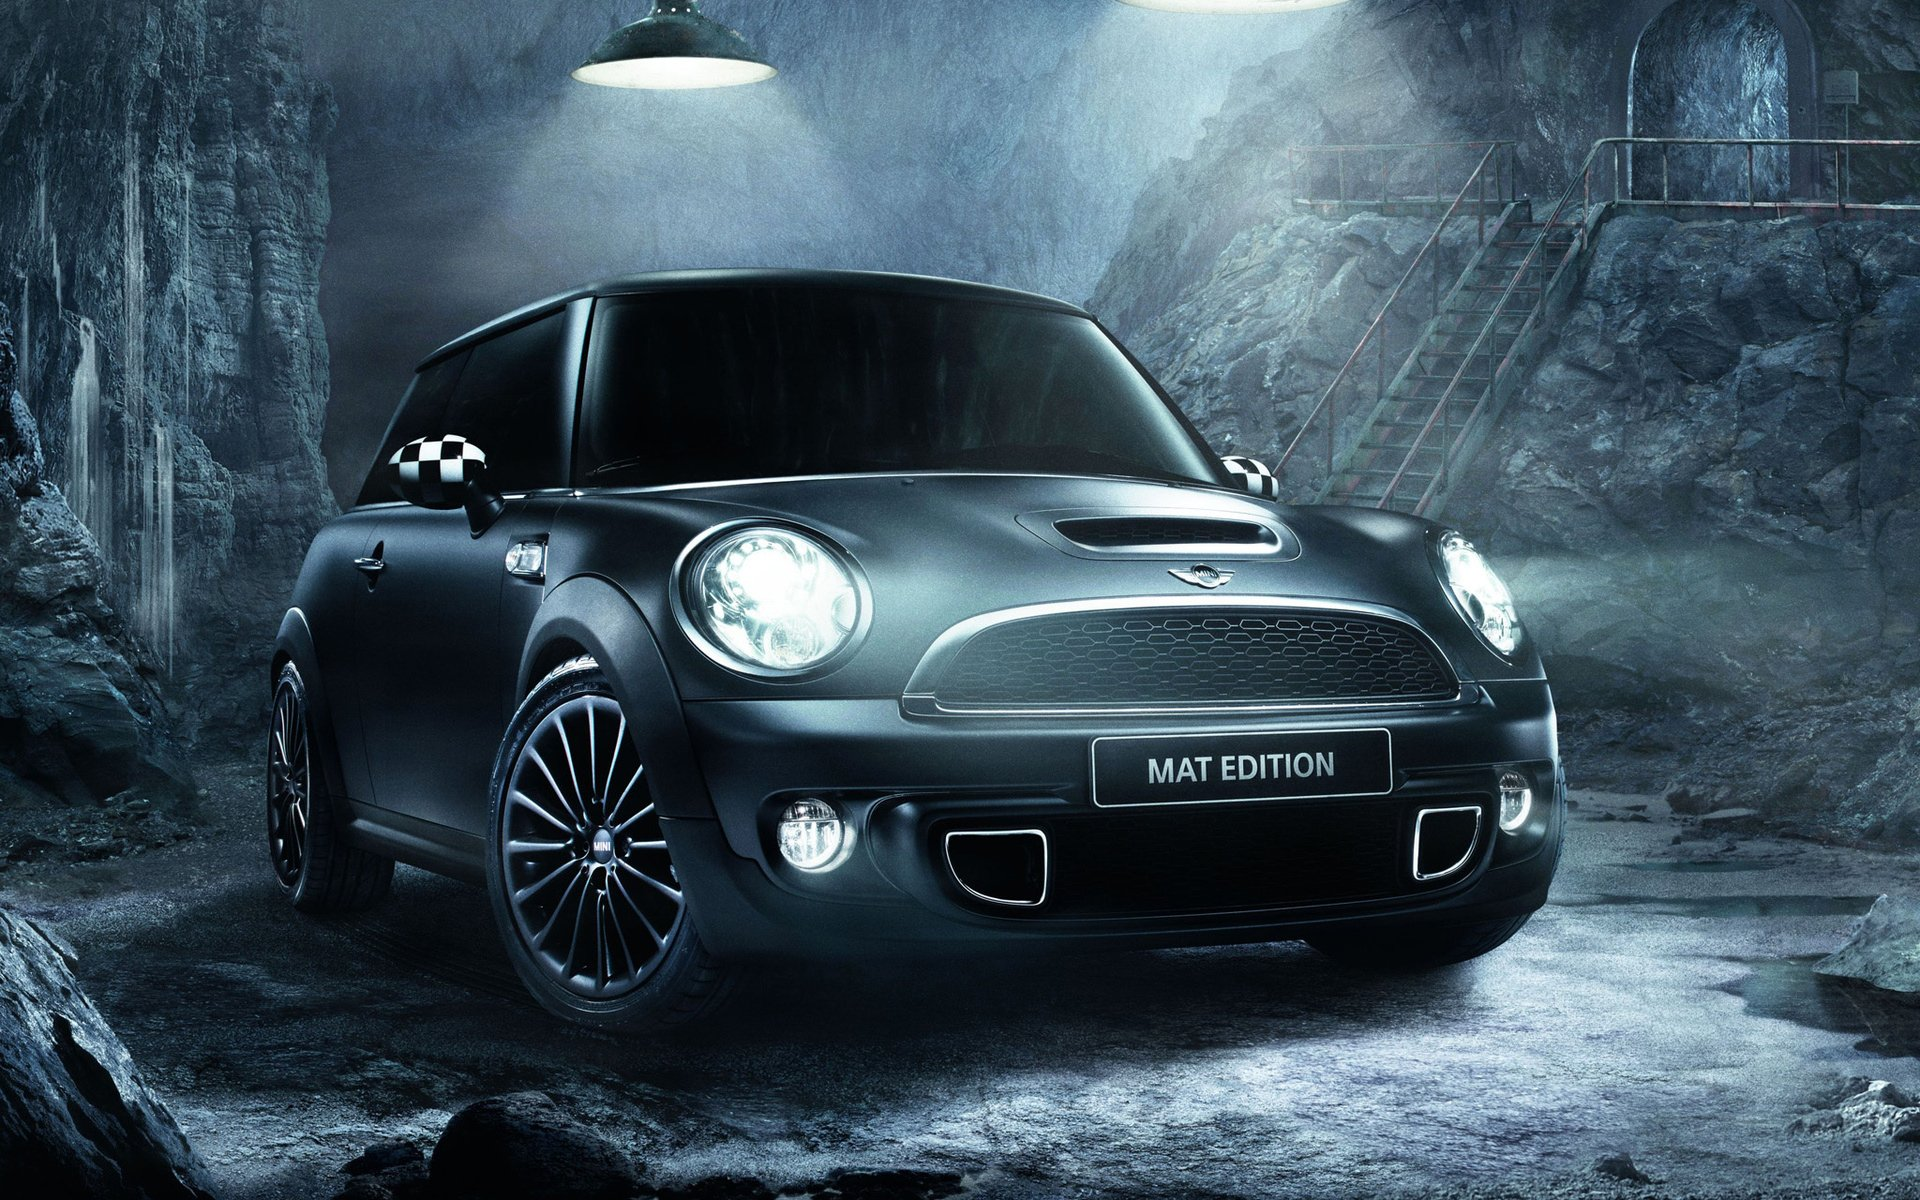 Mini Cooper Wallpapers HD 41700 Wallpaper Download HD Wallpaper 1920x1200